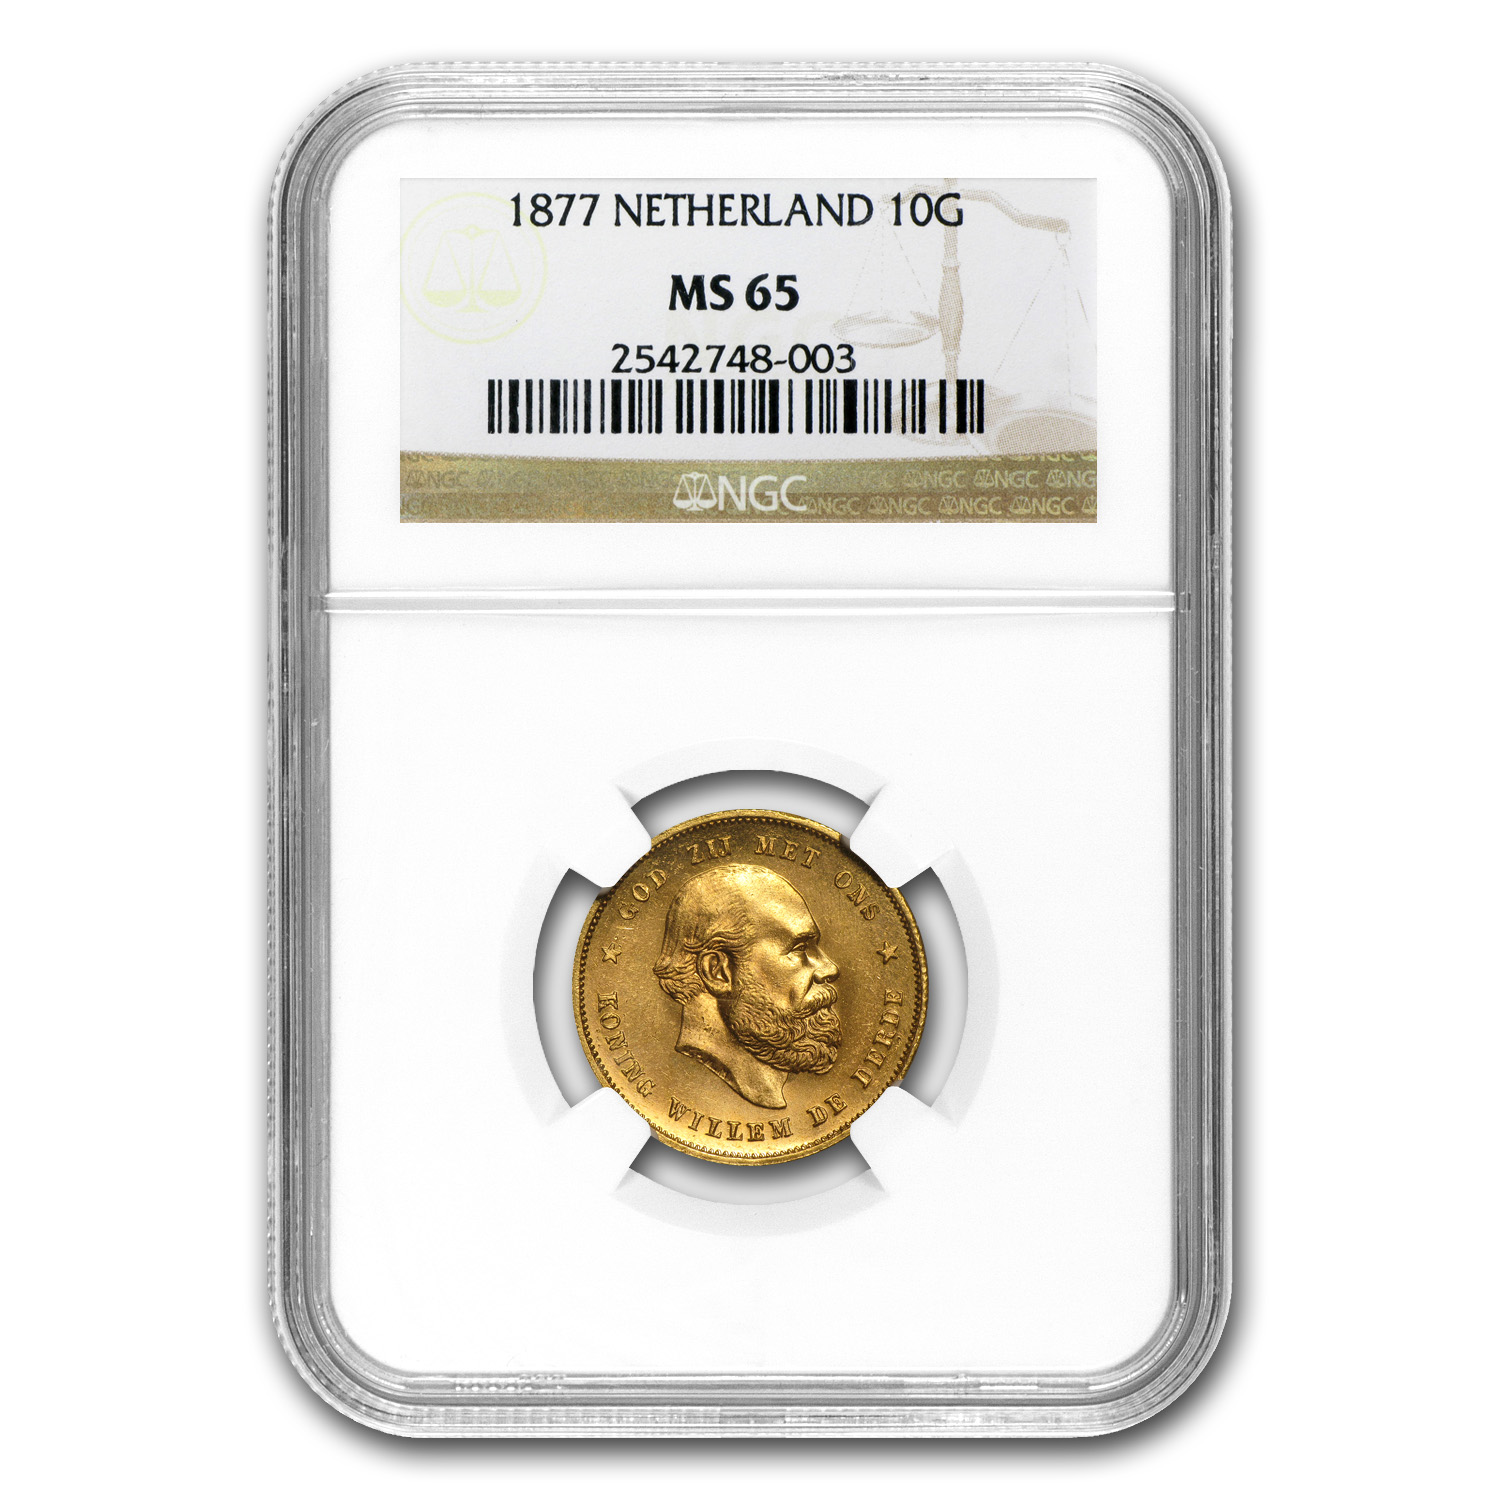 Netherlands 1877 Gold 10 Guilder - MS-65 NGC